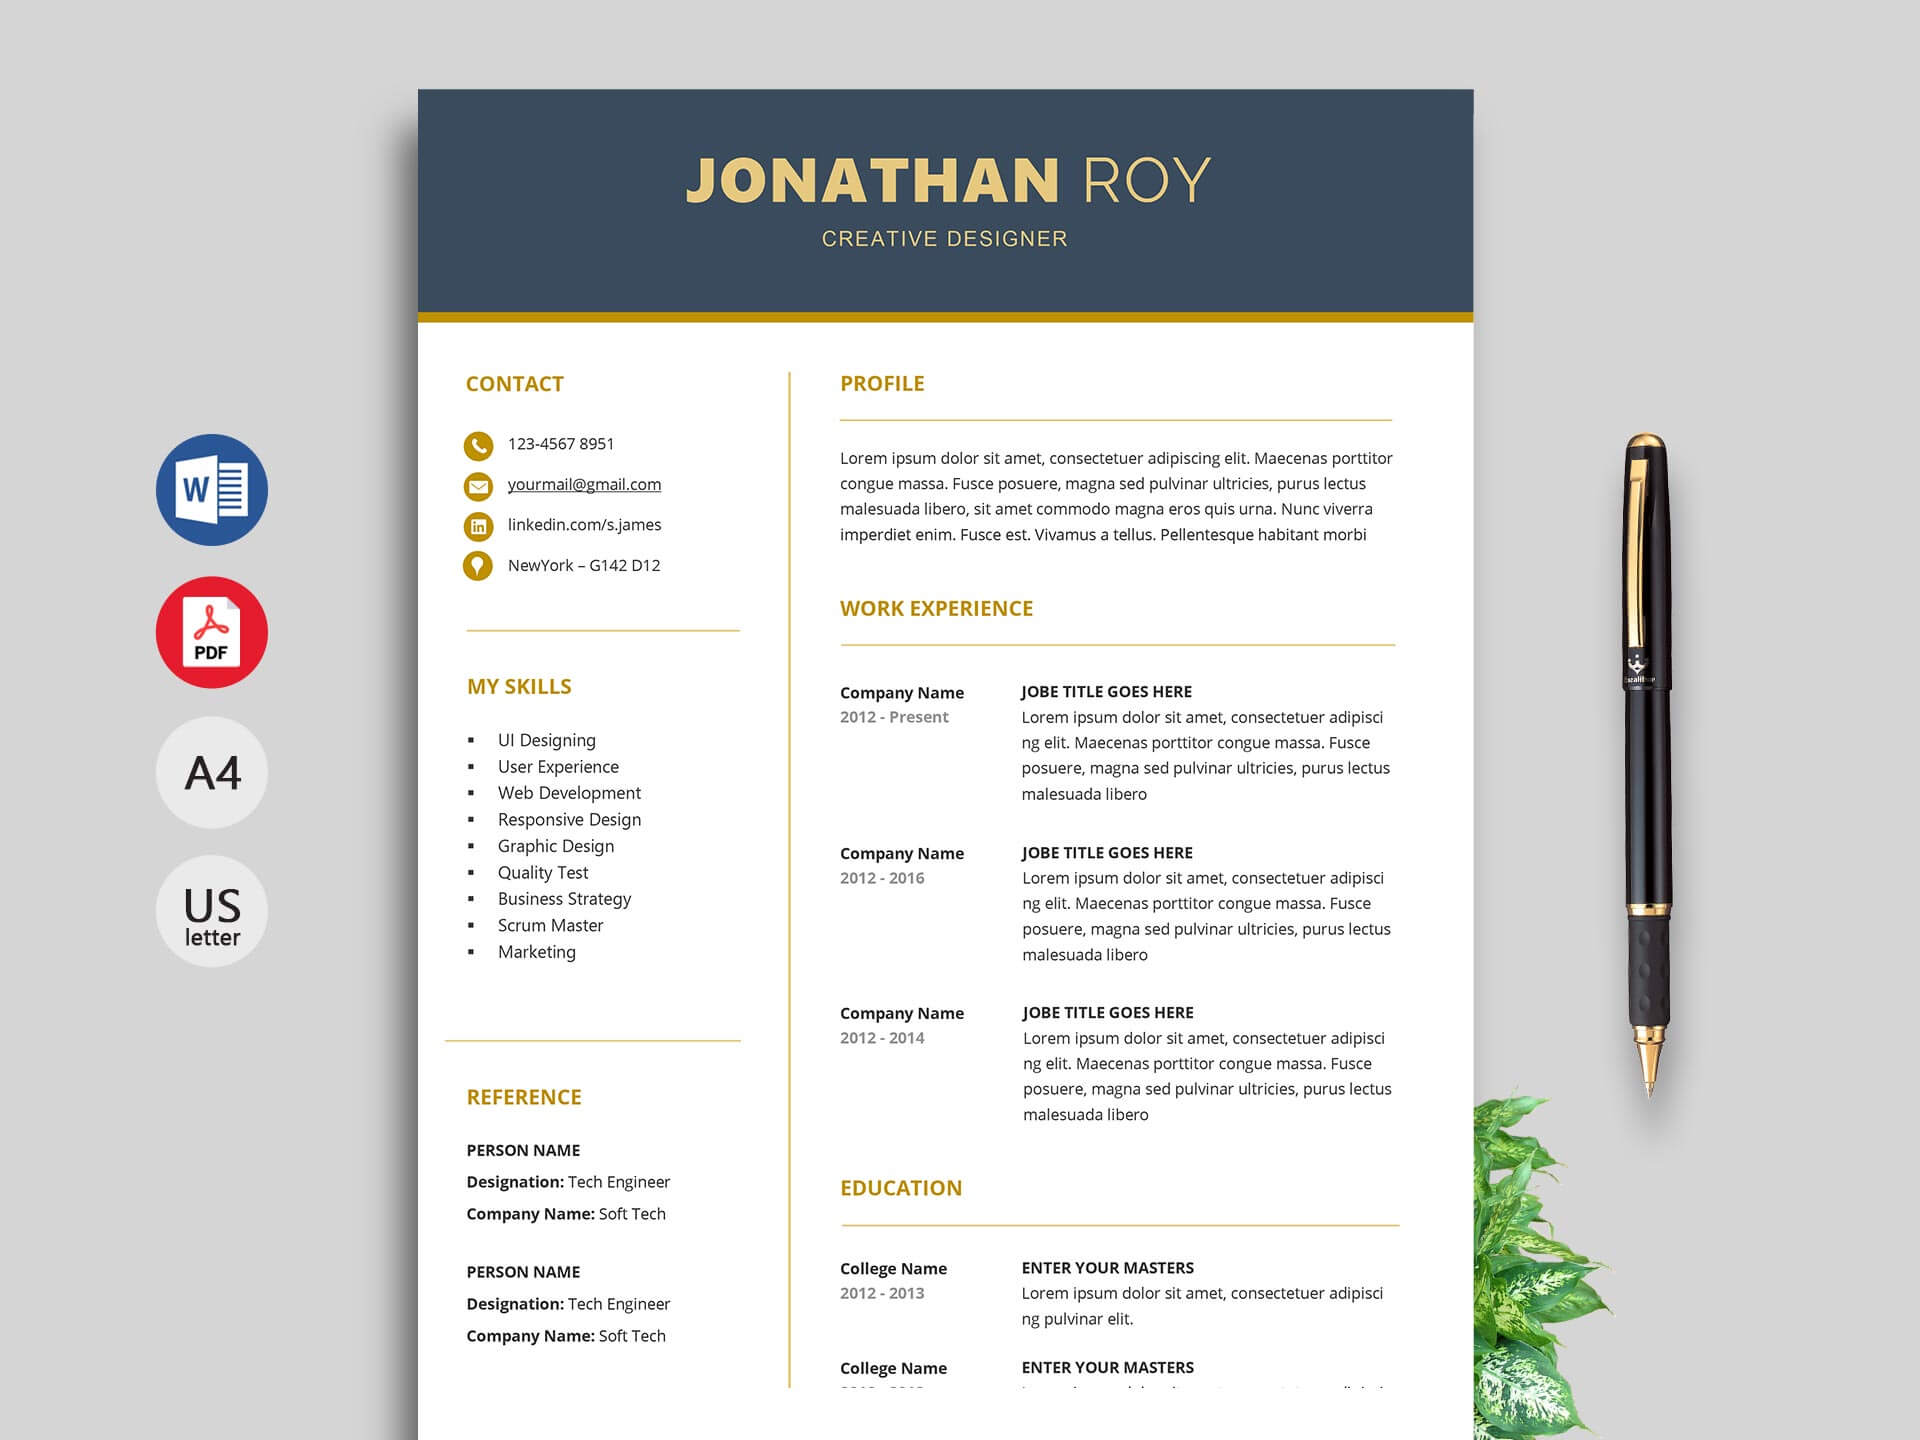 Free Simple Resume & Cv Templates Word Format 2020 | Resumekraft Throughout Free Downloadable Resume Templates For Word